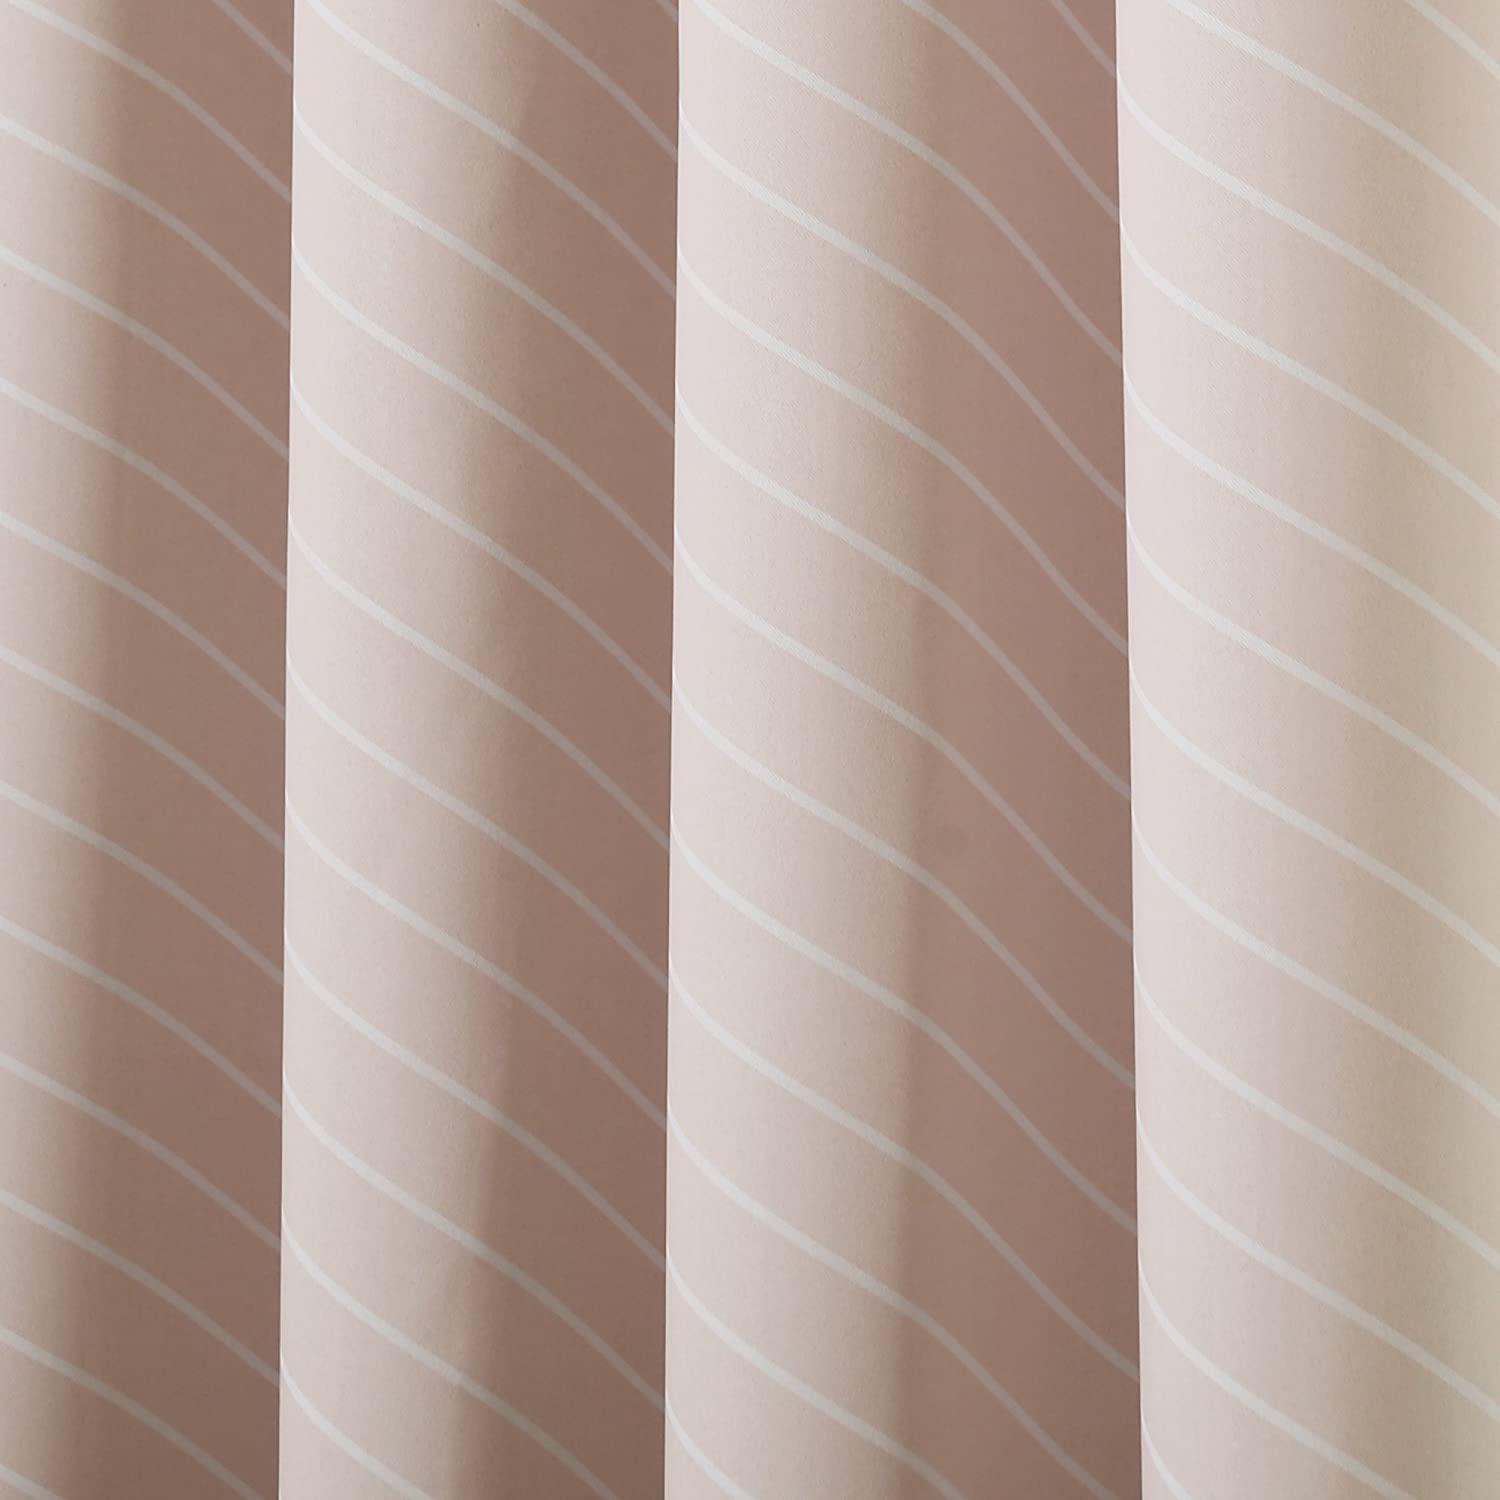 52 W X 96 L - Best Home Fashion Room Darkening Diagonal Stripe Curtains BG-62-DSTRP-LILAC-96 Lilac Set of 2 Panels Stainless Steel Nickel Grommet Top